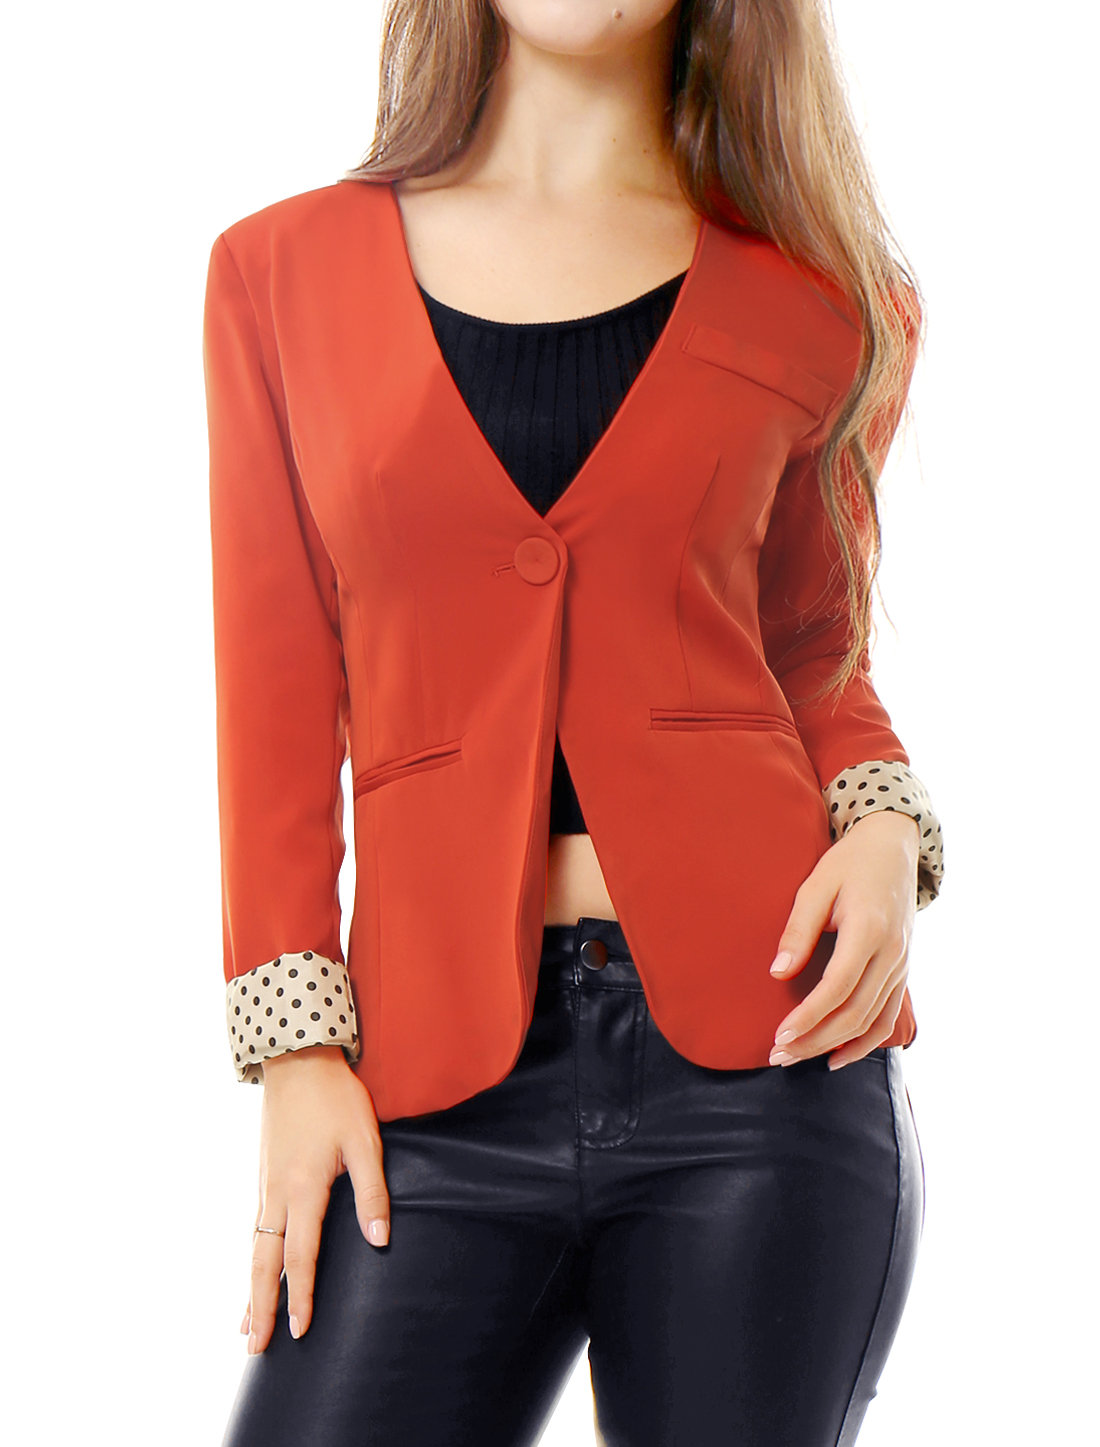 Woman One Button Closure Dots Lined Padded Shoulder Blazer Orange XL